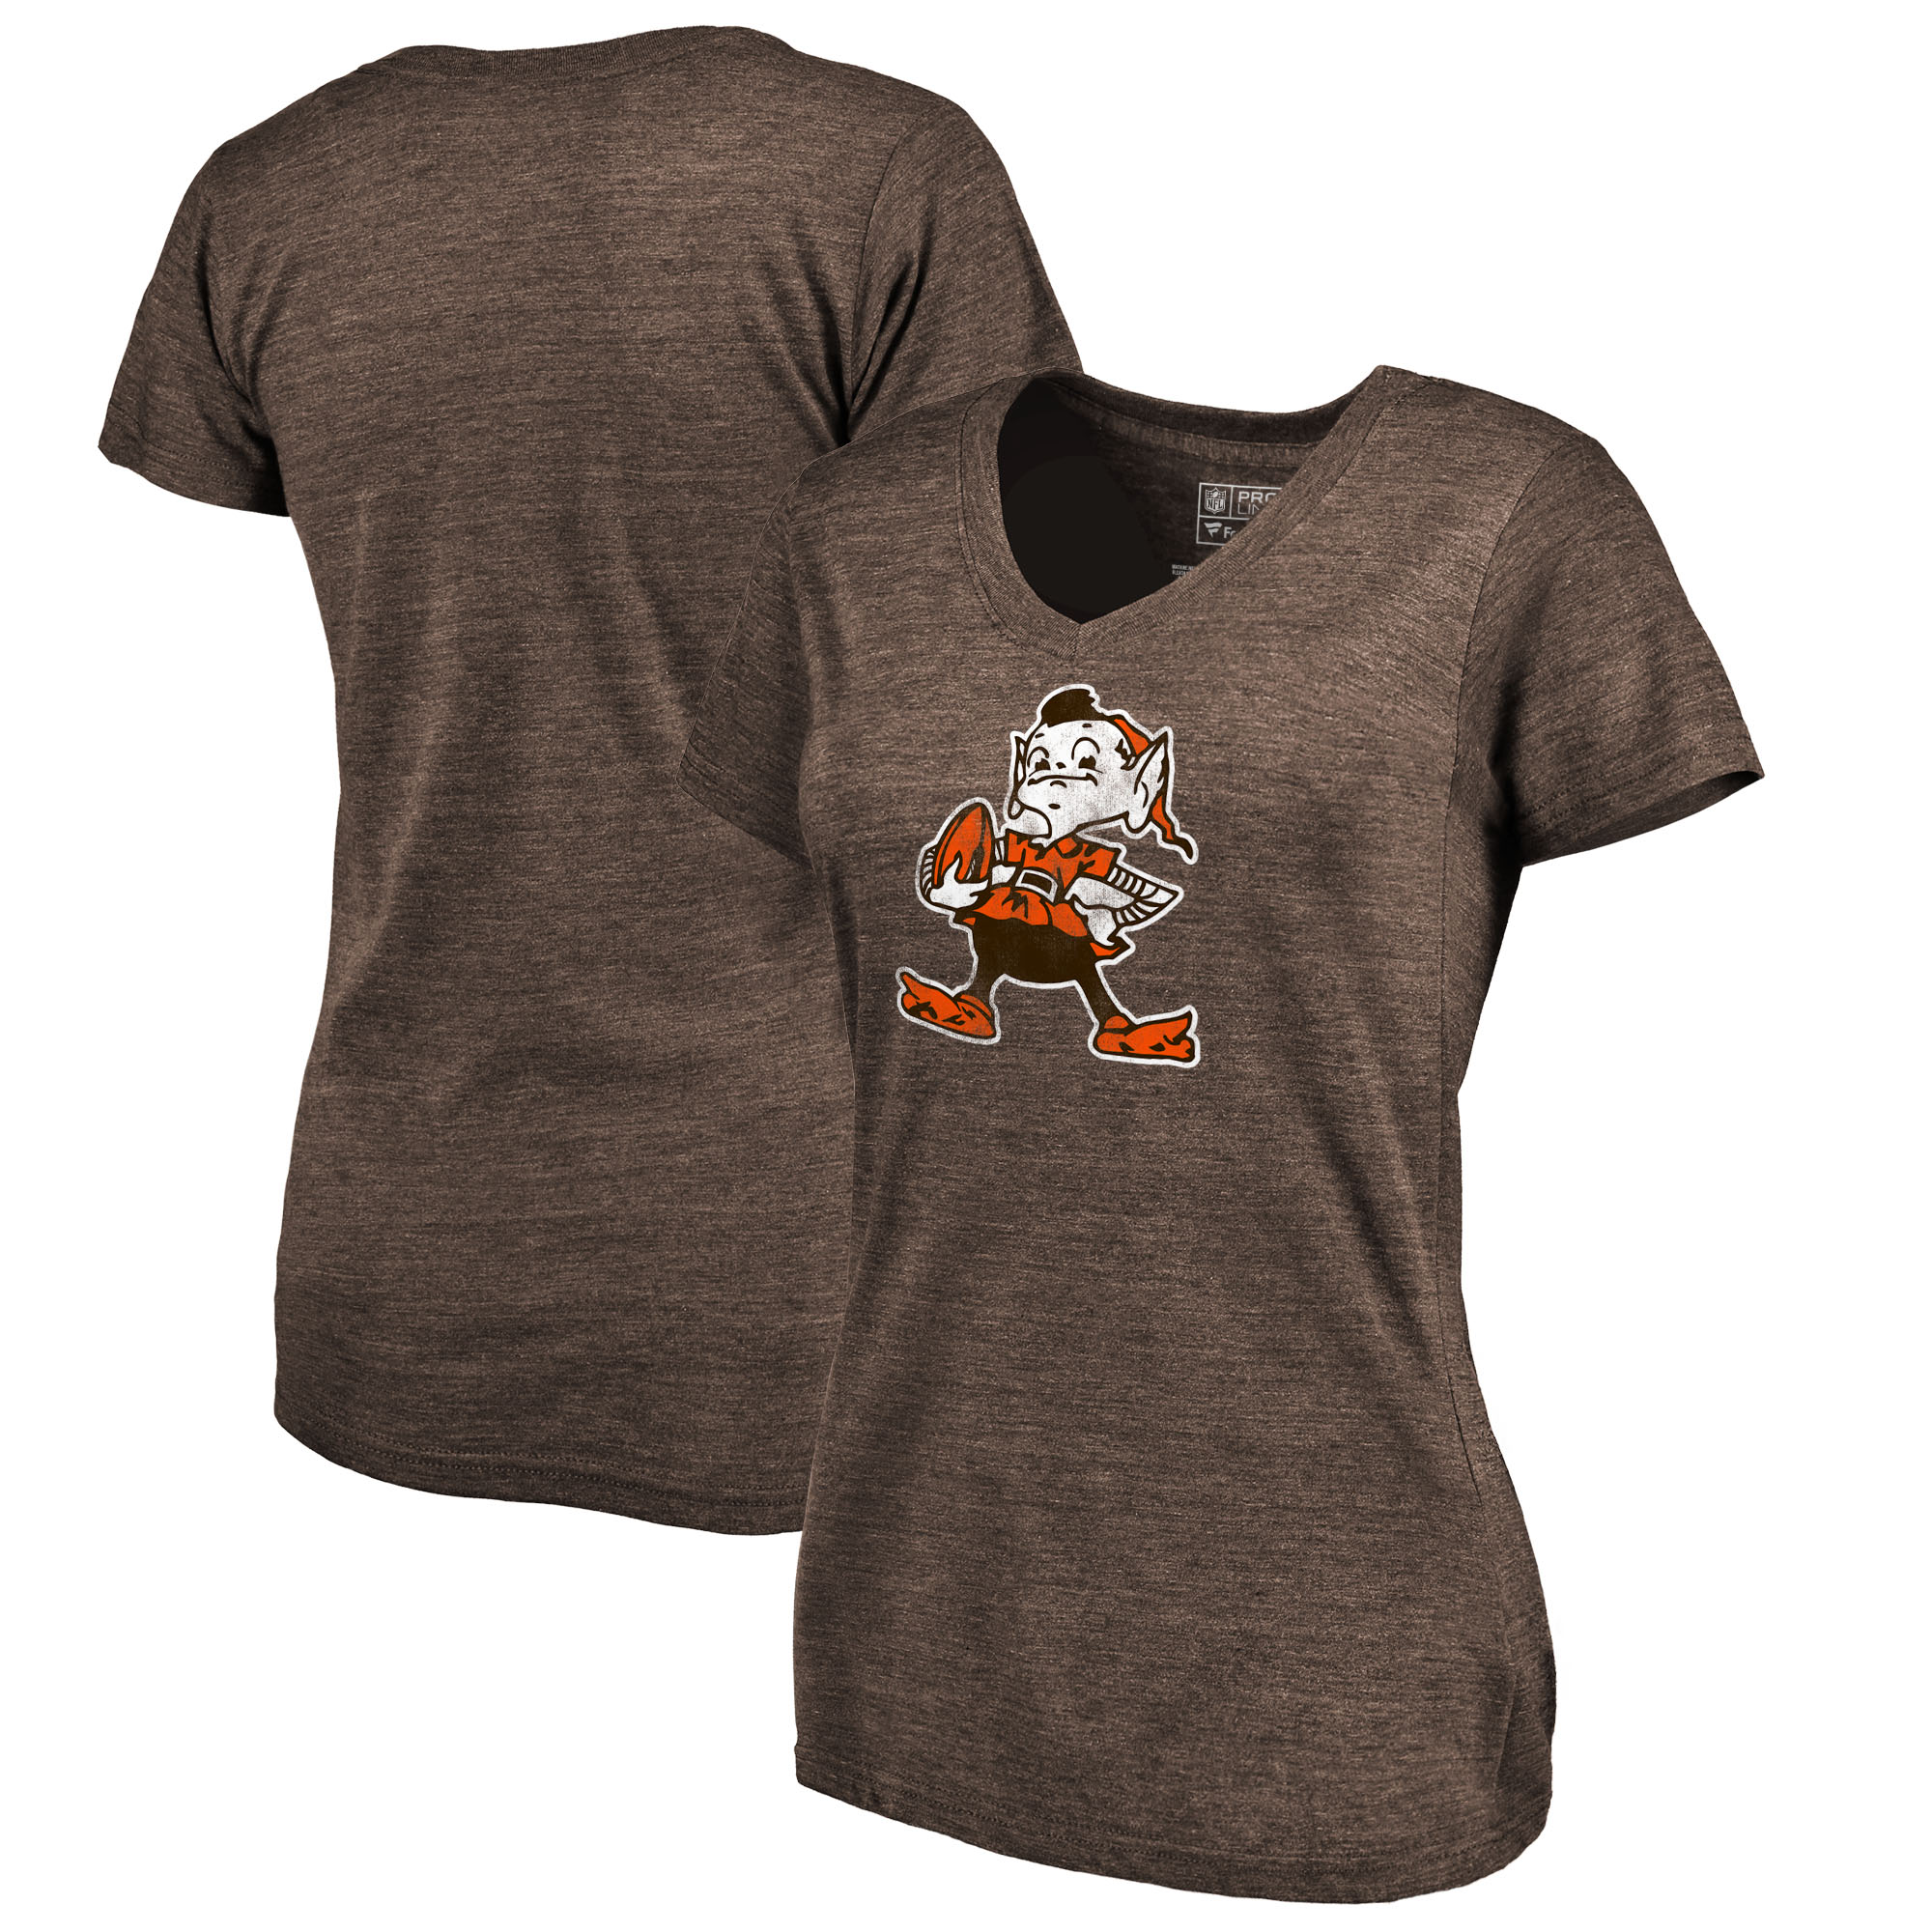 Cleveland Browns Fanatics Branded Women's Throwback Logo Tri-Blend V-Neck T-Shirt - Brown